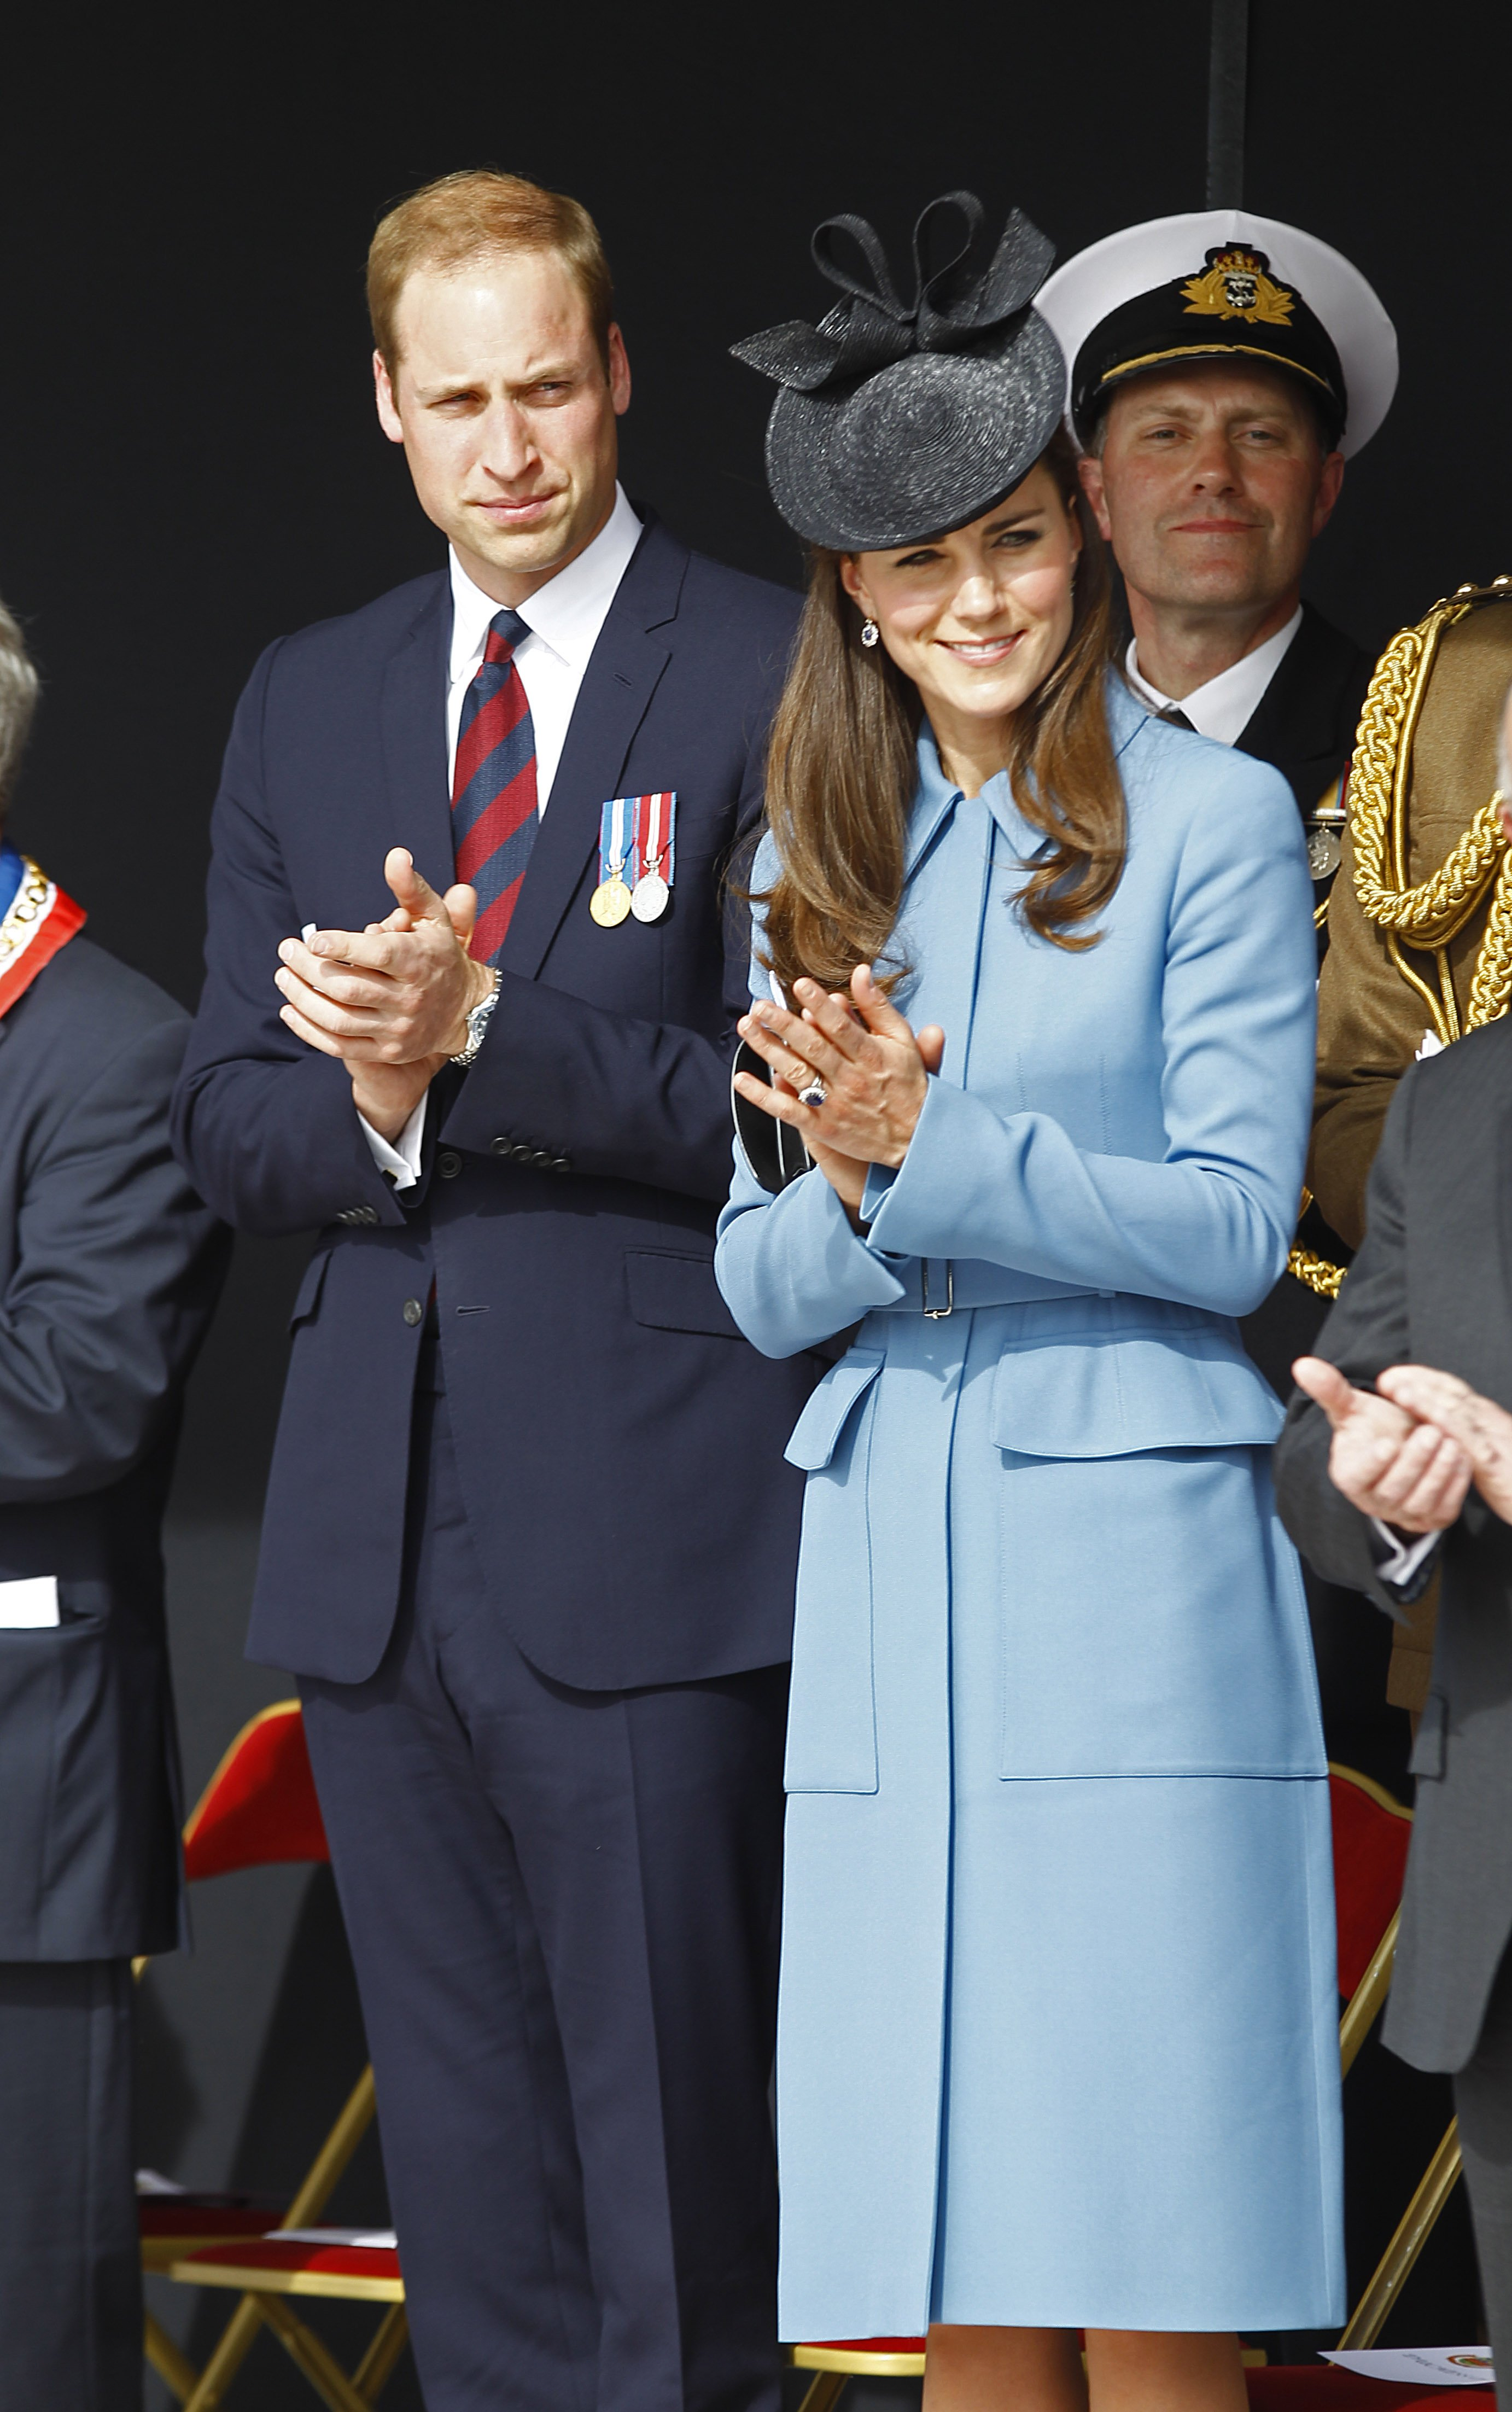 <strong>Mad Hatter</strong>Prince William, Duke of Cambridge and Kate the Duchess of Cambridge applaud during a remembrance ceremony in Arromanches, France, on June 6, 2014.